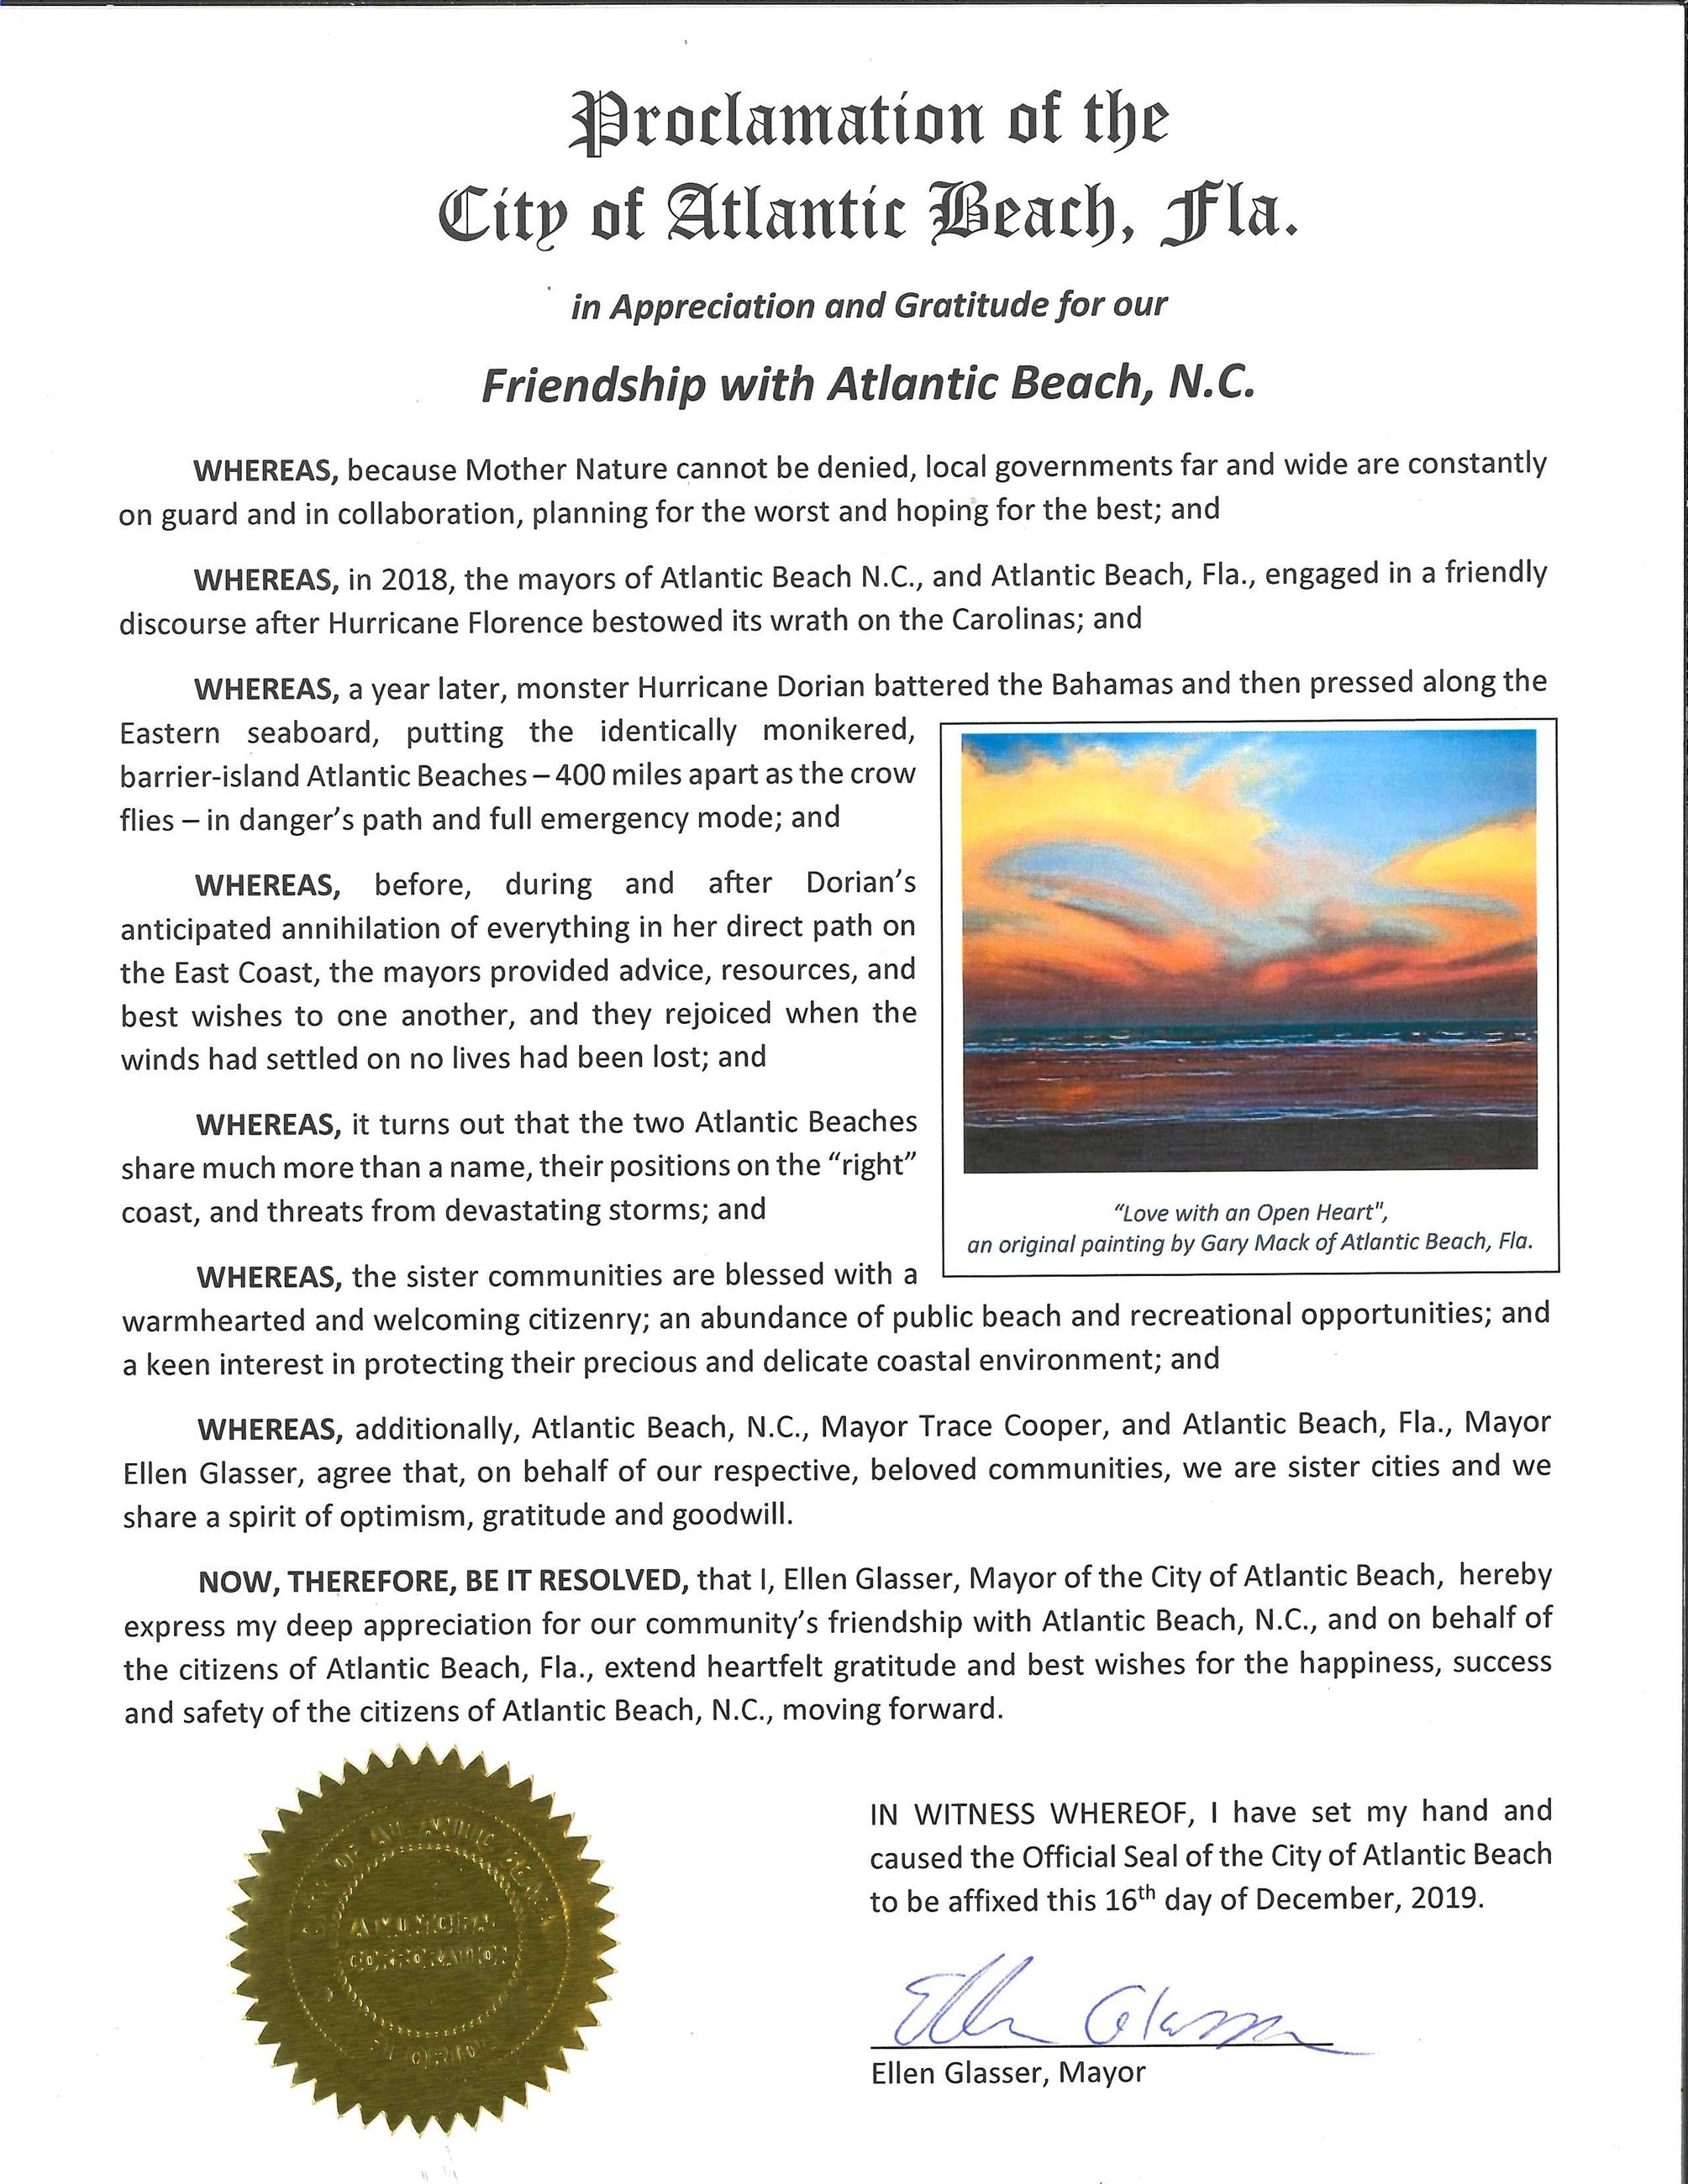 Proclamation - Friendship with Atlantic Beach NC